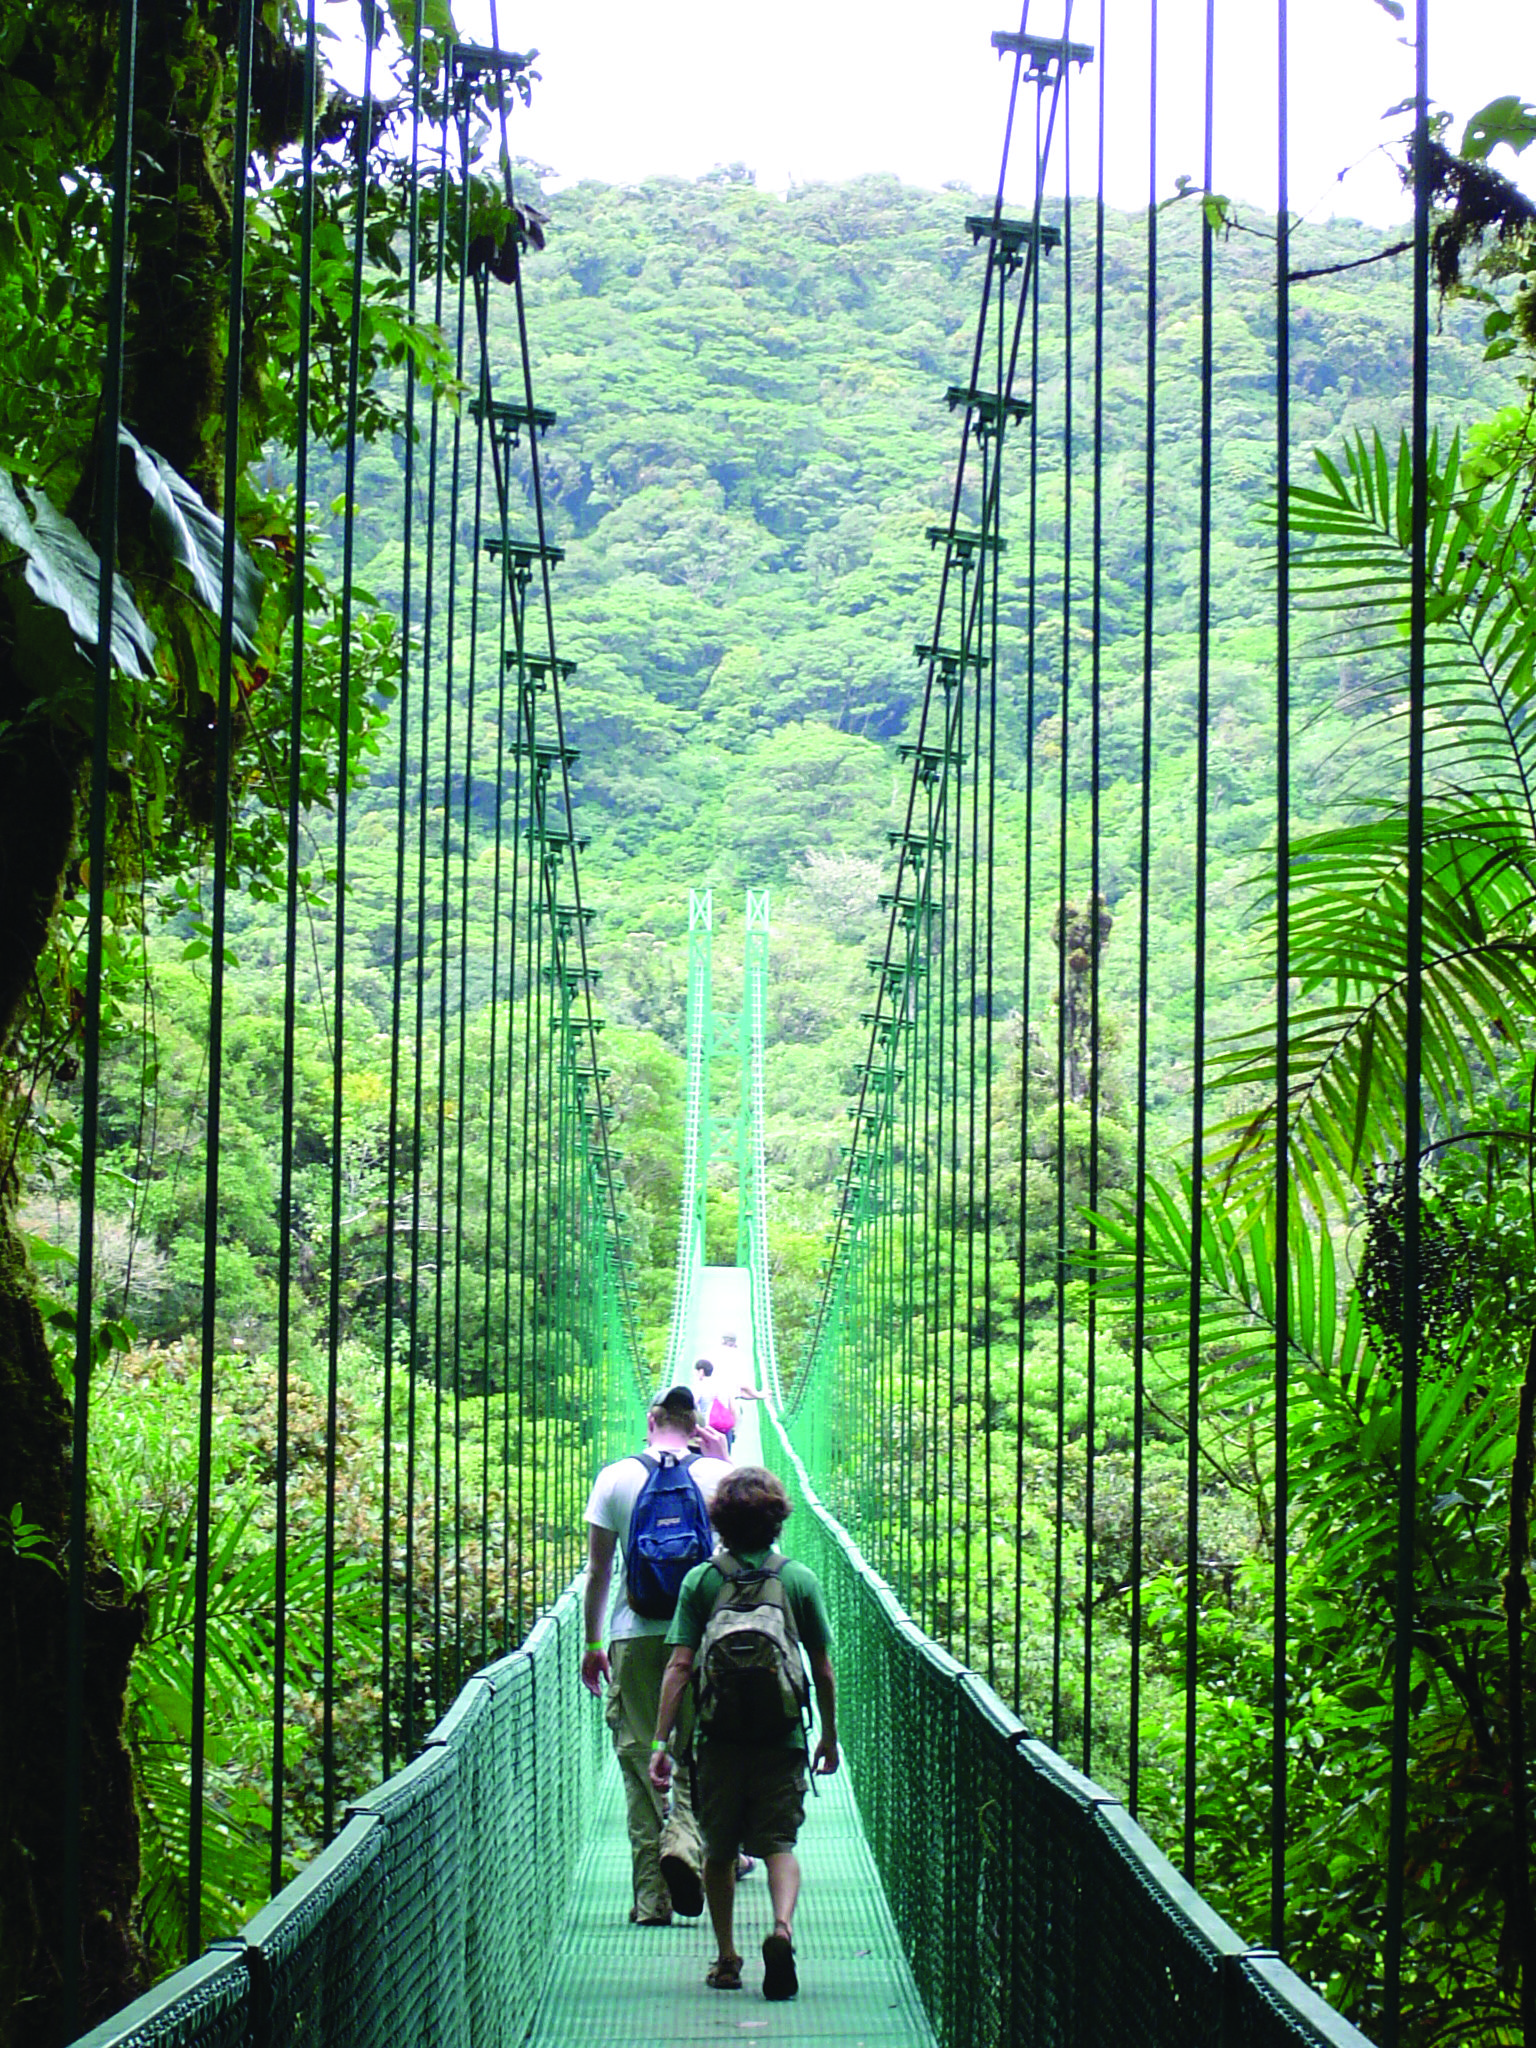 Costa Rica Bridge best place on earth. My second home